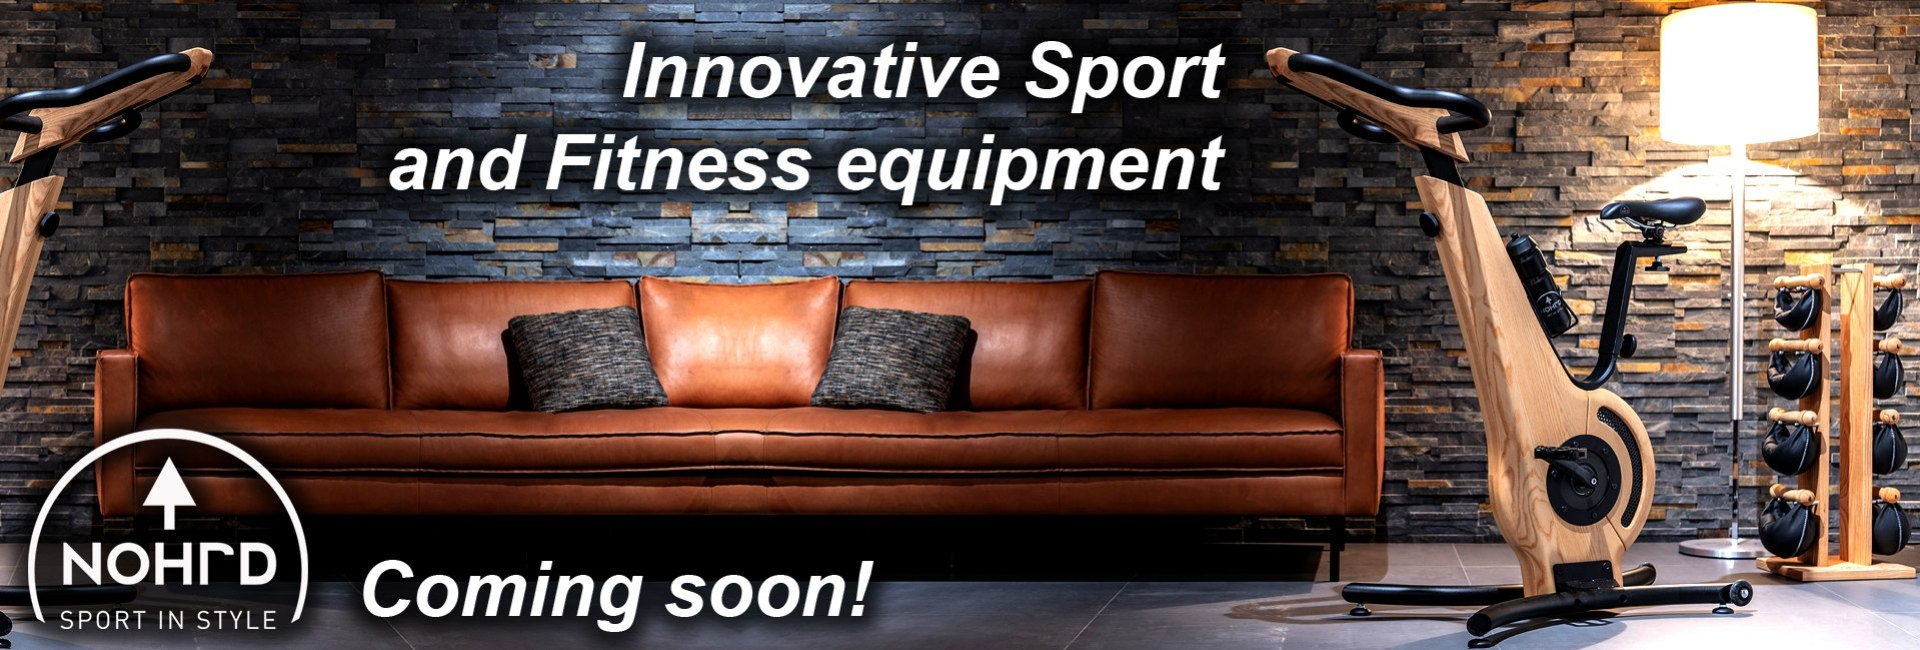 Innovative Sport And Fitness Equipment NOHrD